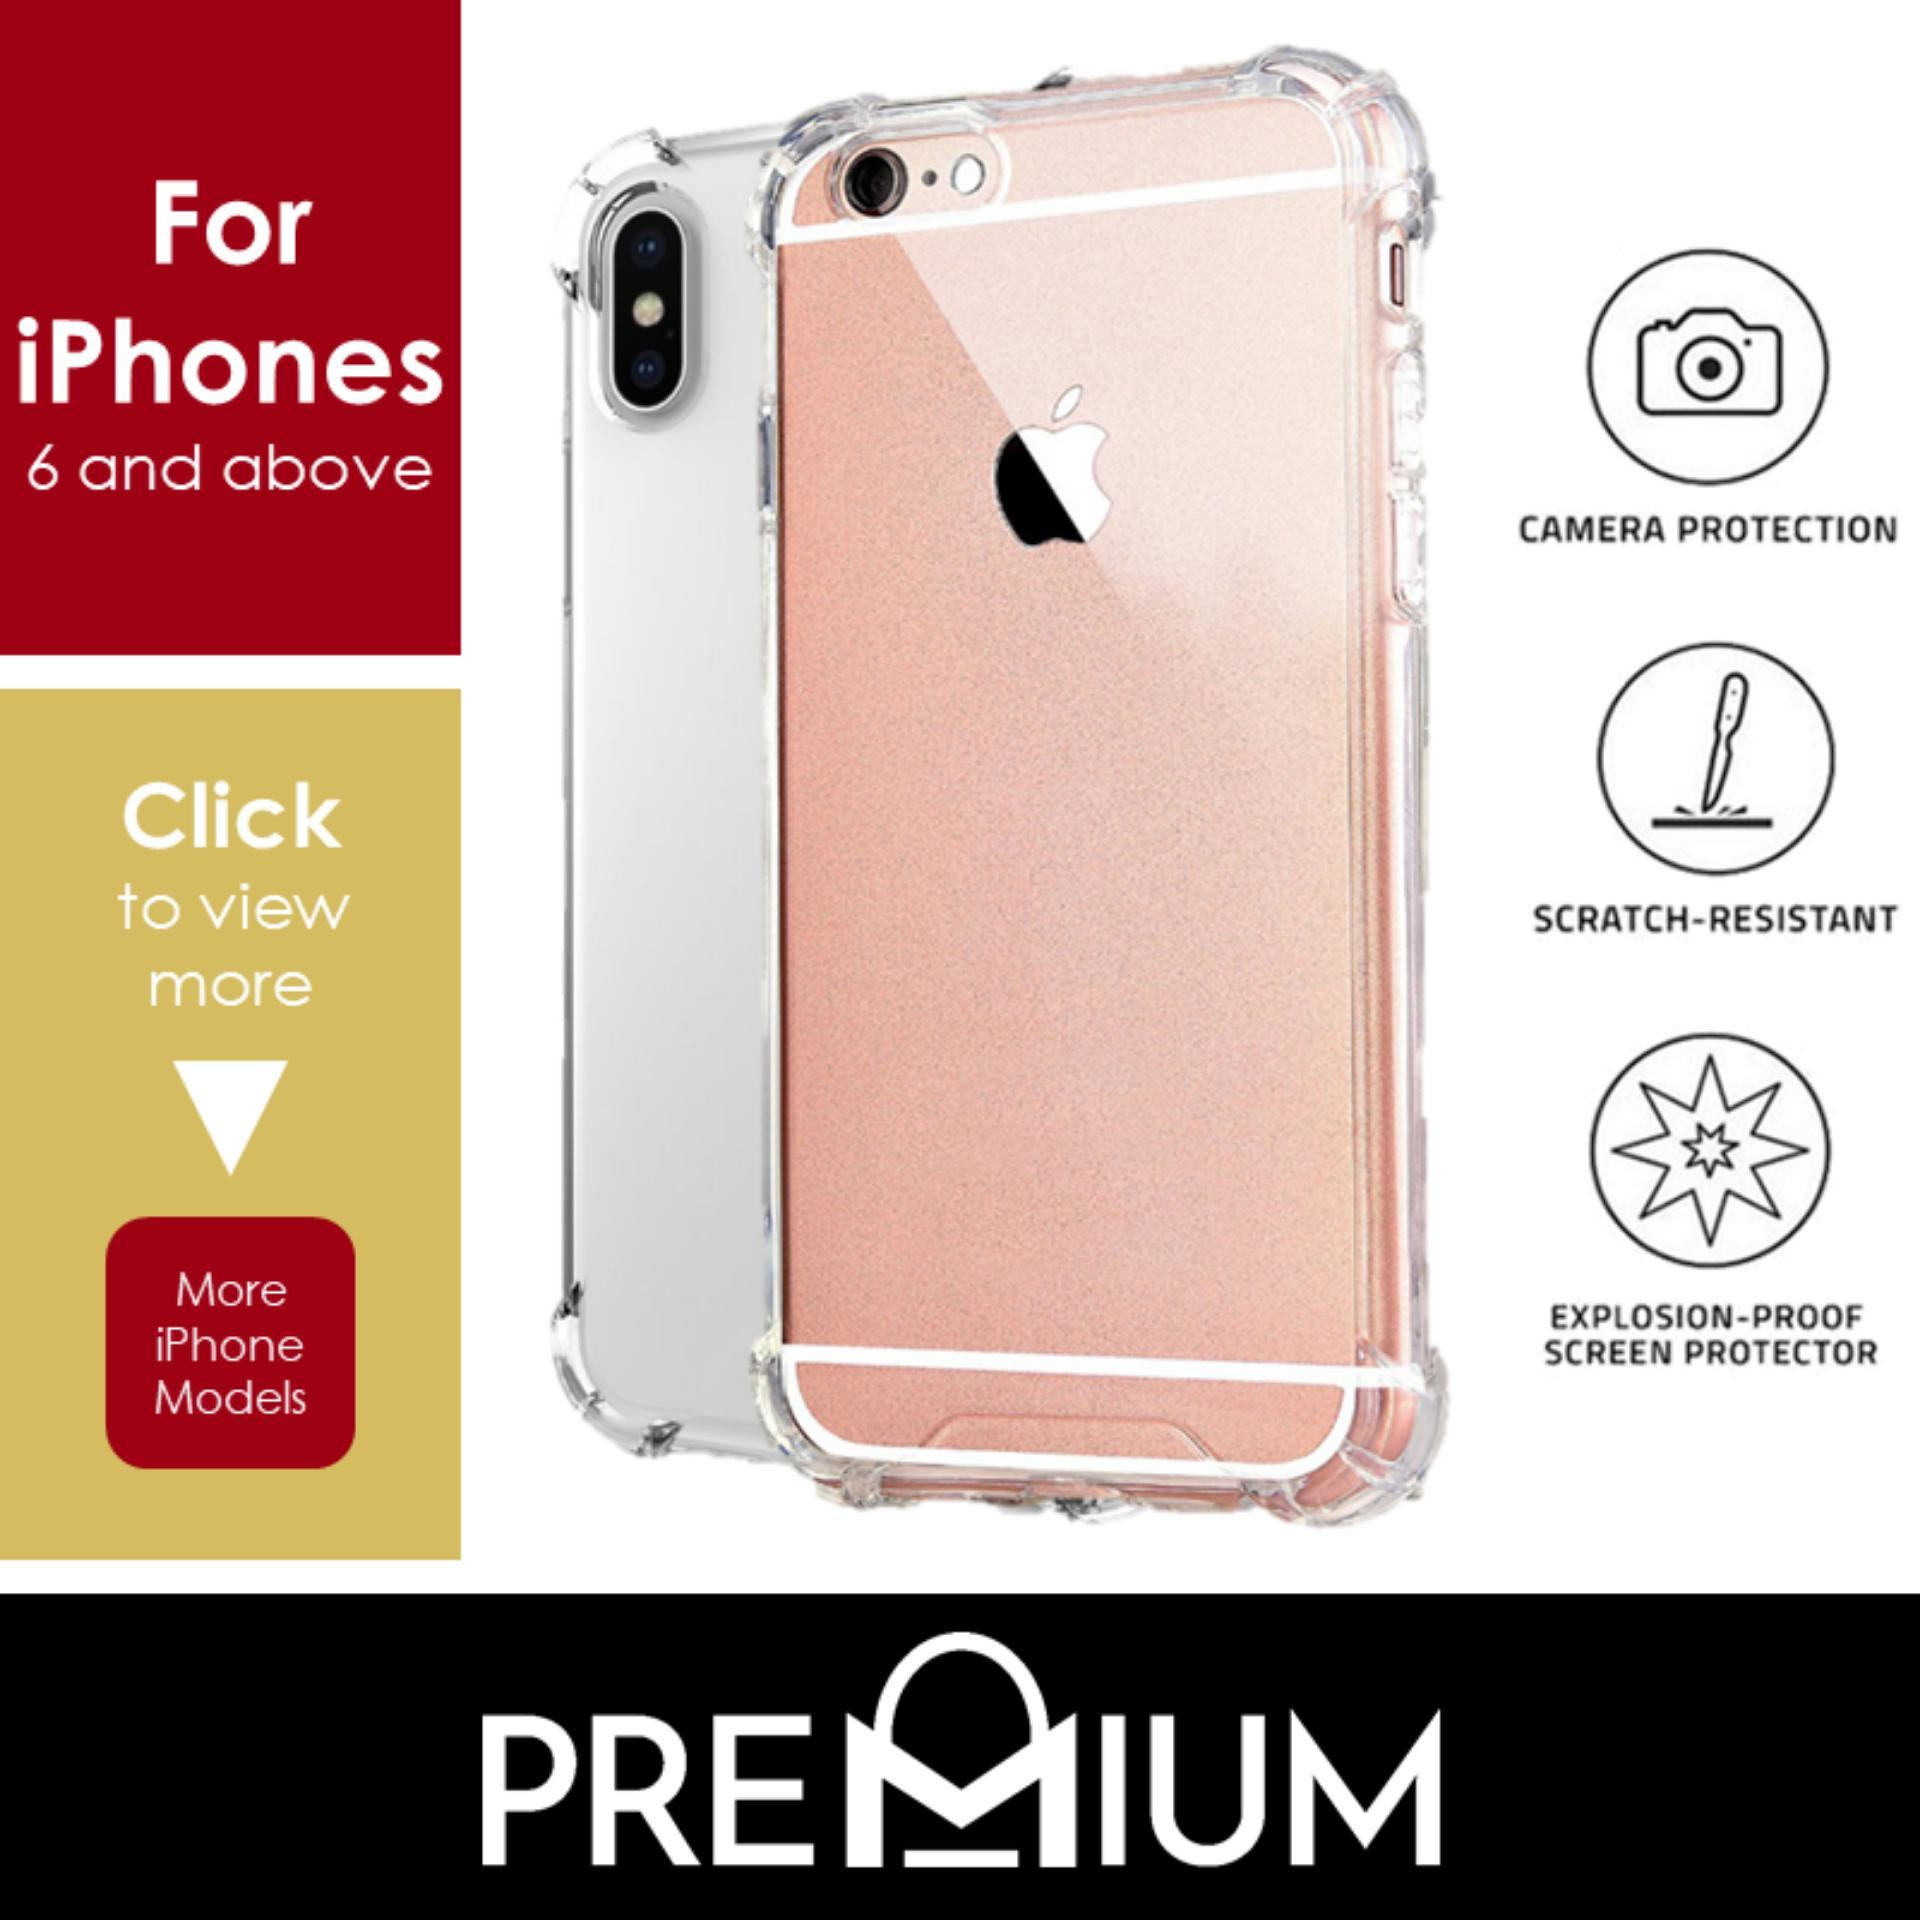 97985e4de2 Singapore. Anti Shock Tough Armor Slim Flexible Transparent Case Casing  Cover Phone Cases For iPhone Xs Max